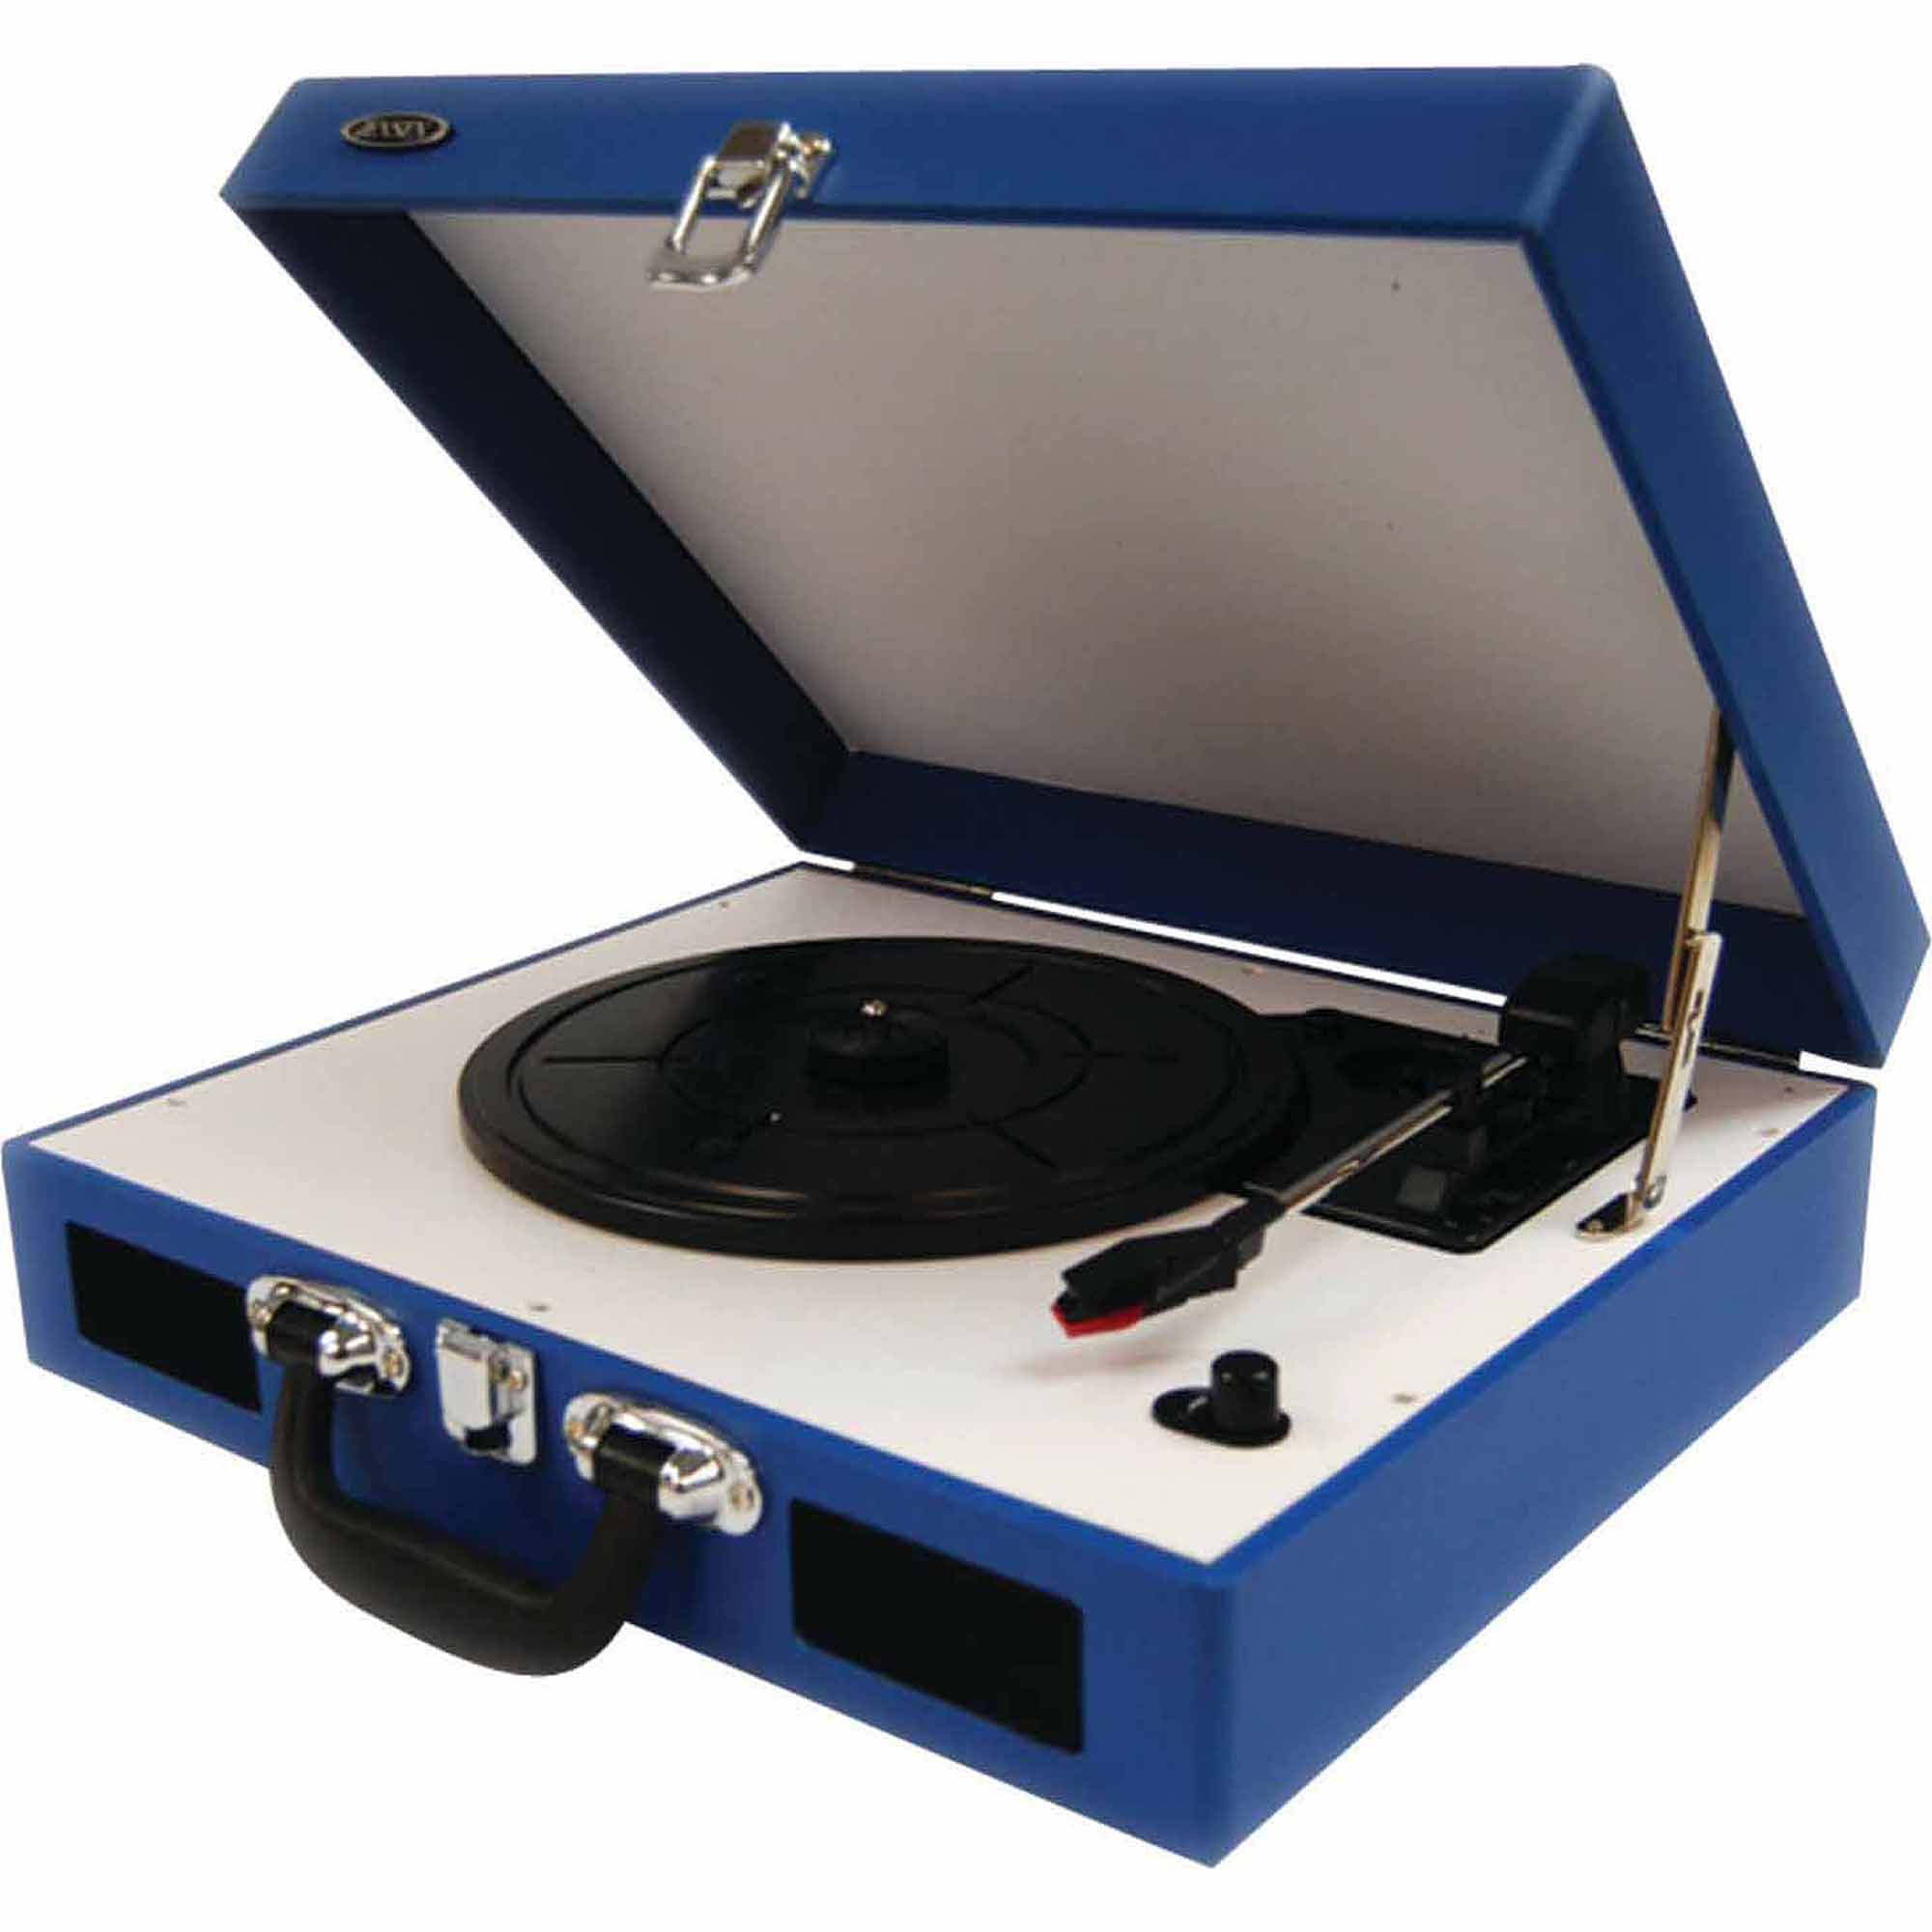 Jensen JTA-410-BL Portable 3-Speed Stereo Turntable with Built-In Speakers, Blue